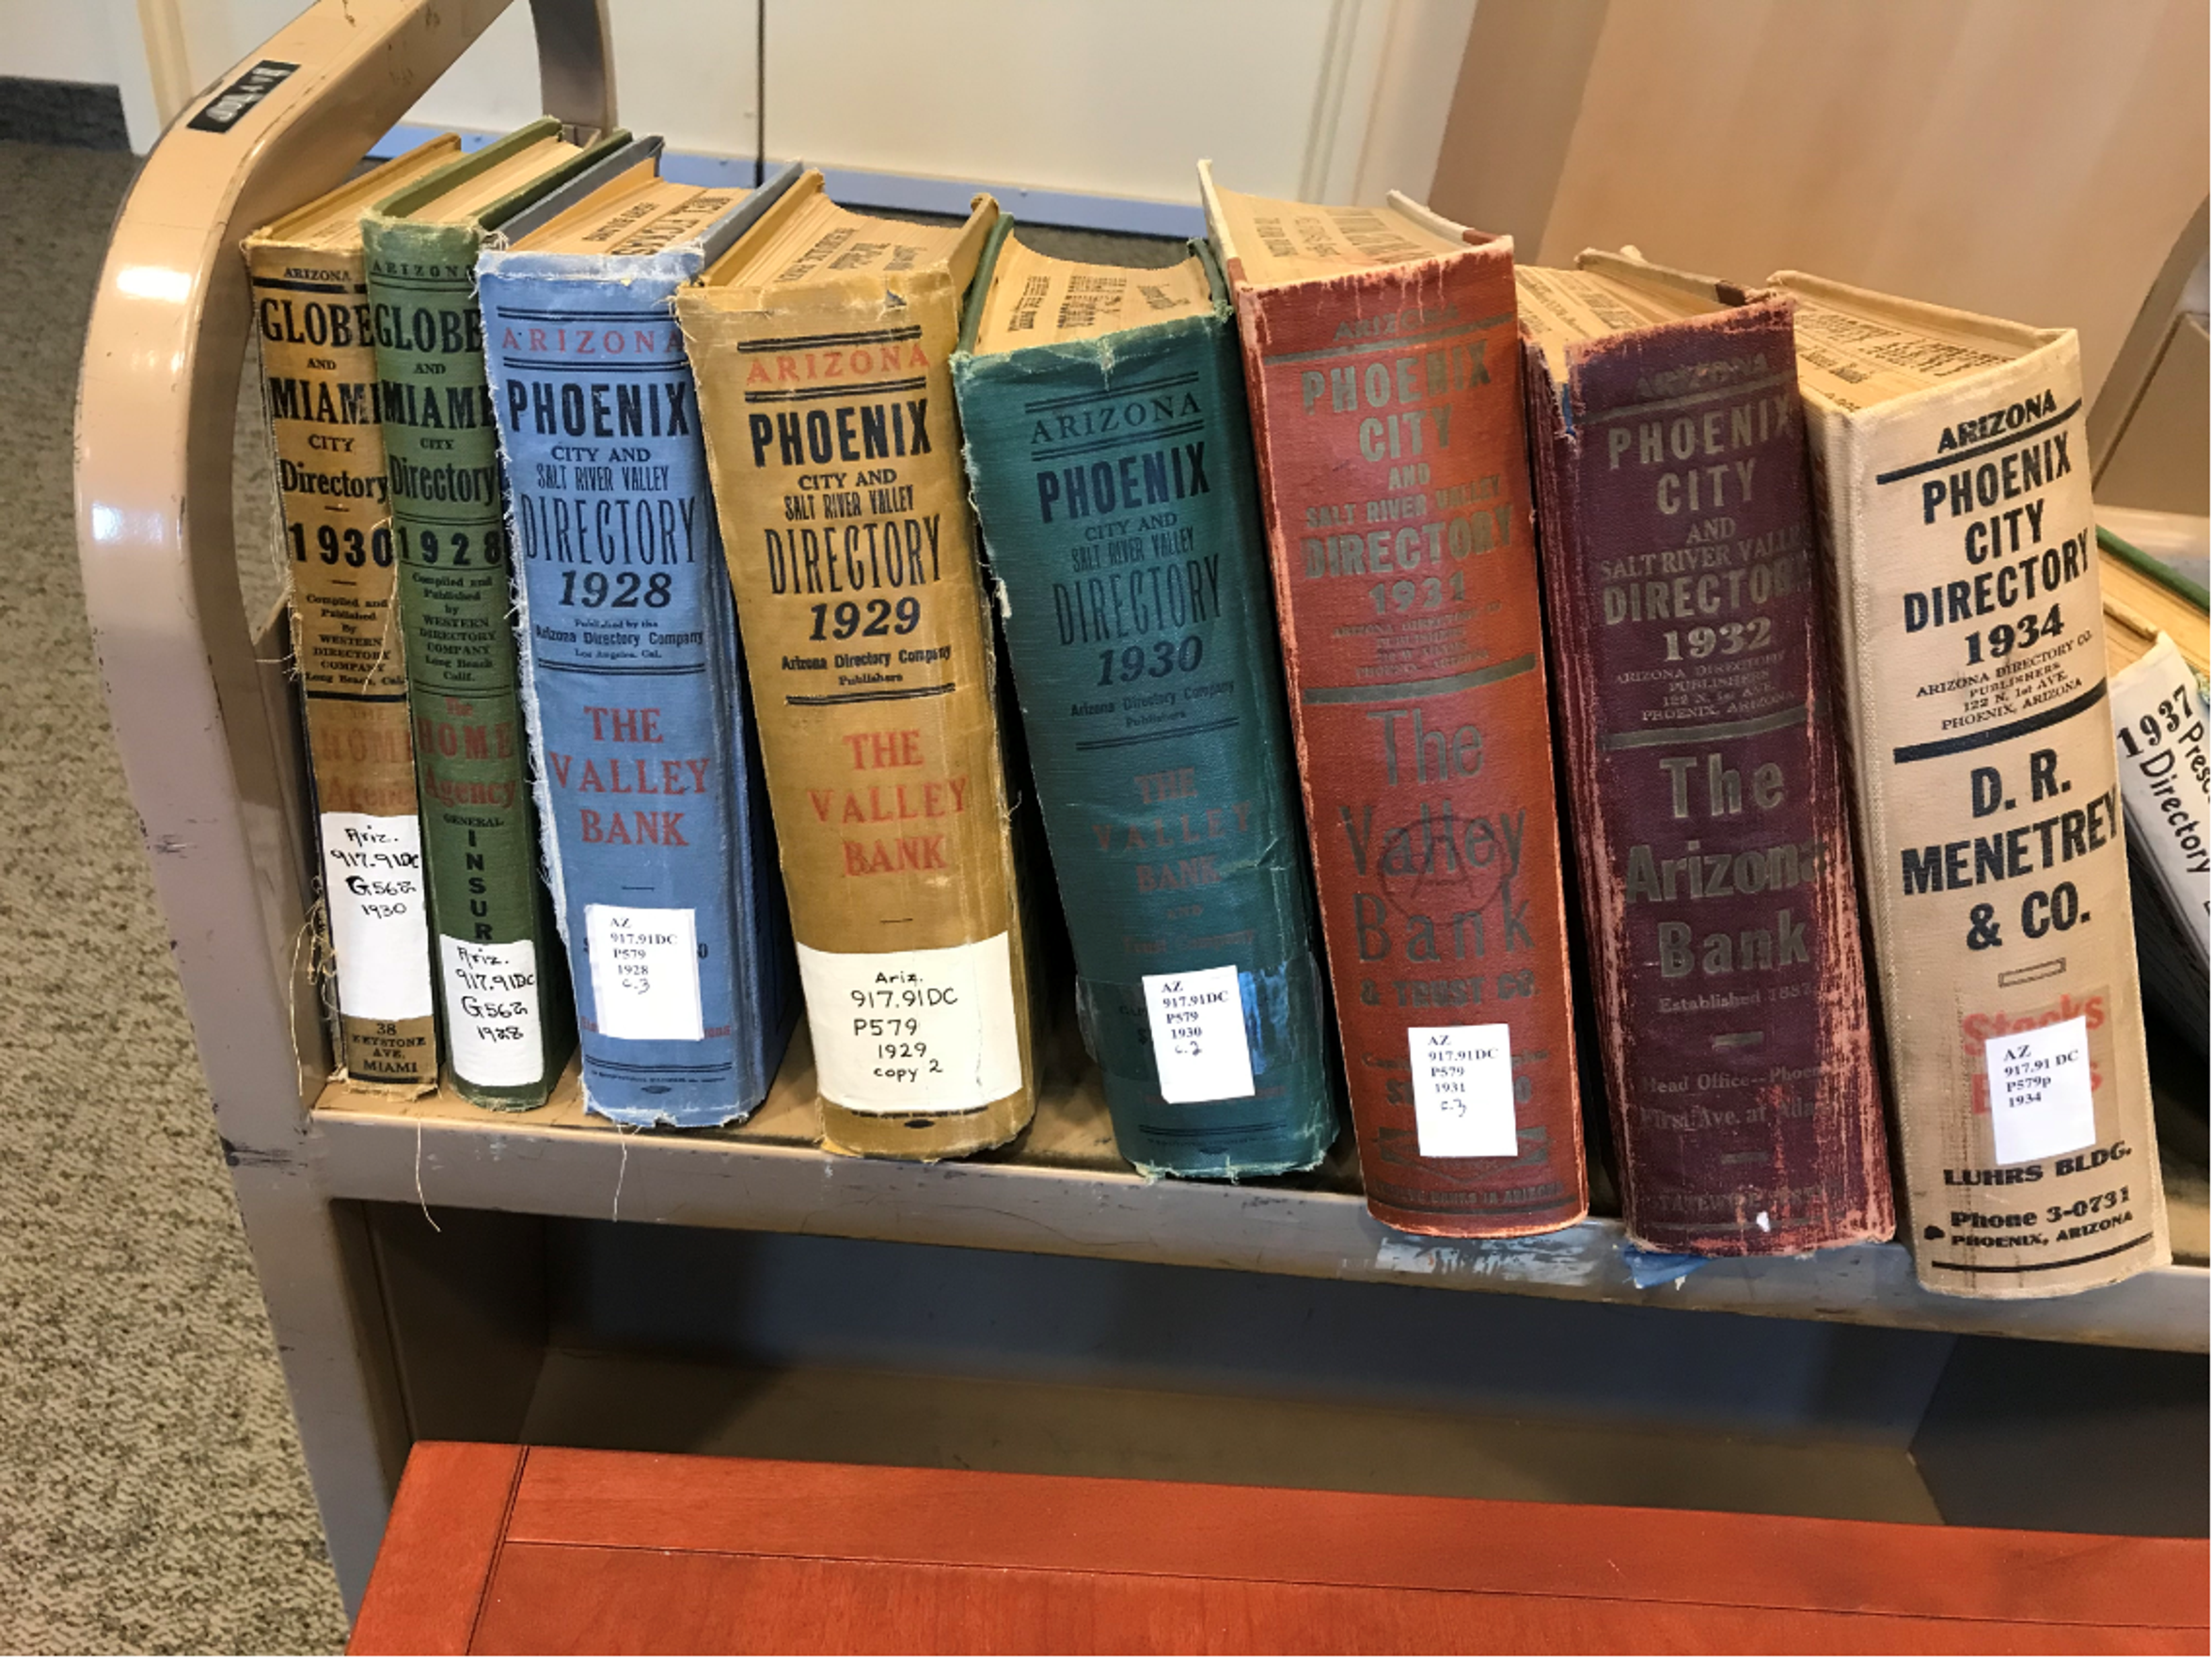 Reporter John D'Anna spent hundreds of hours in libraries and archives researching the Hatbox Baby case. These Phoenix and Prescott city directories are some of the resources he used at the Arizona State Library and Archives.